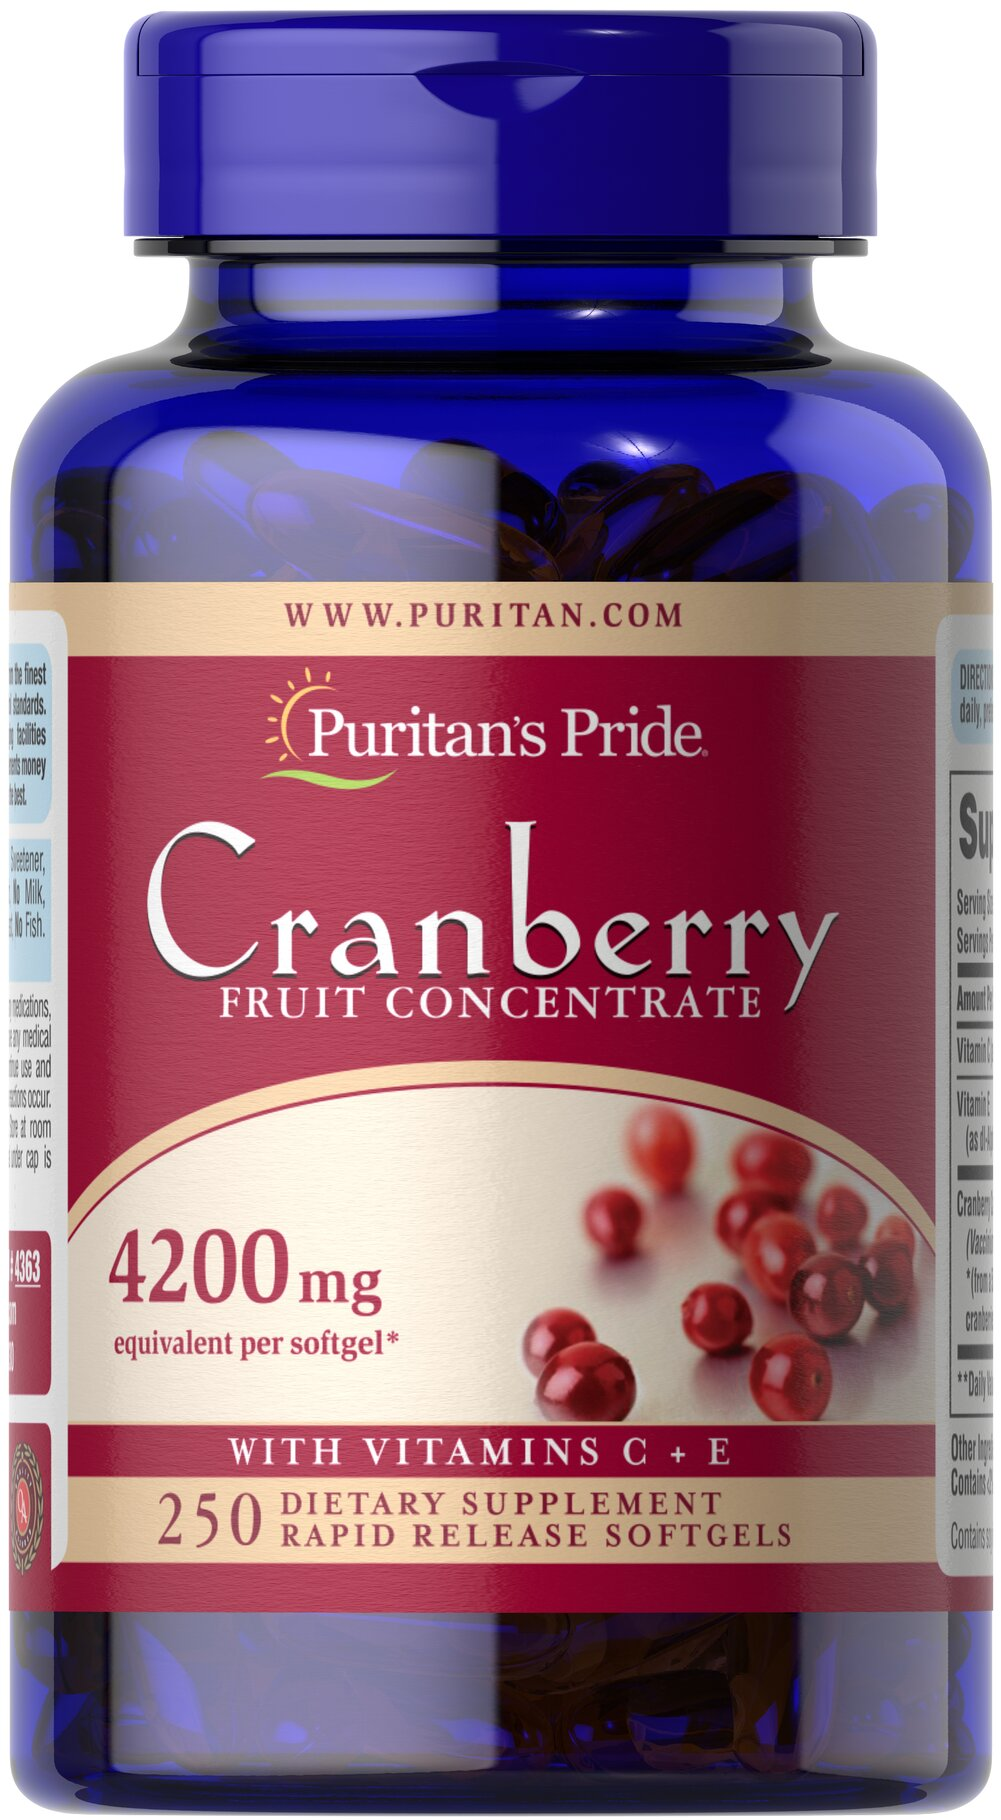 Cranberry Fruit Concentrate with C & E 4200 mg <p>This product has the benefits of concentrated cranberry without the unnecessary sugar and calories. Each of our concentrated (4200 mg) Cranberry softgels provide the equivalent of (8400 mg) of fresh cranberries plus (40 mg) of Vitamin C and 6 IU of Vitamin E.  Adults can take two softgels 3 times daily, after meals.</p> 250 Softgels 4200 mg $13.99